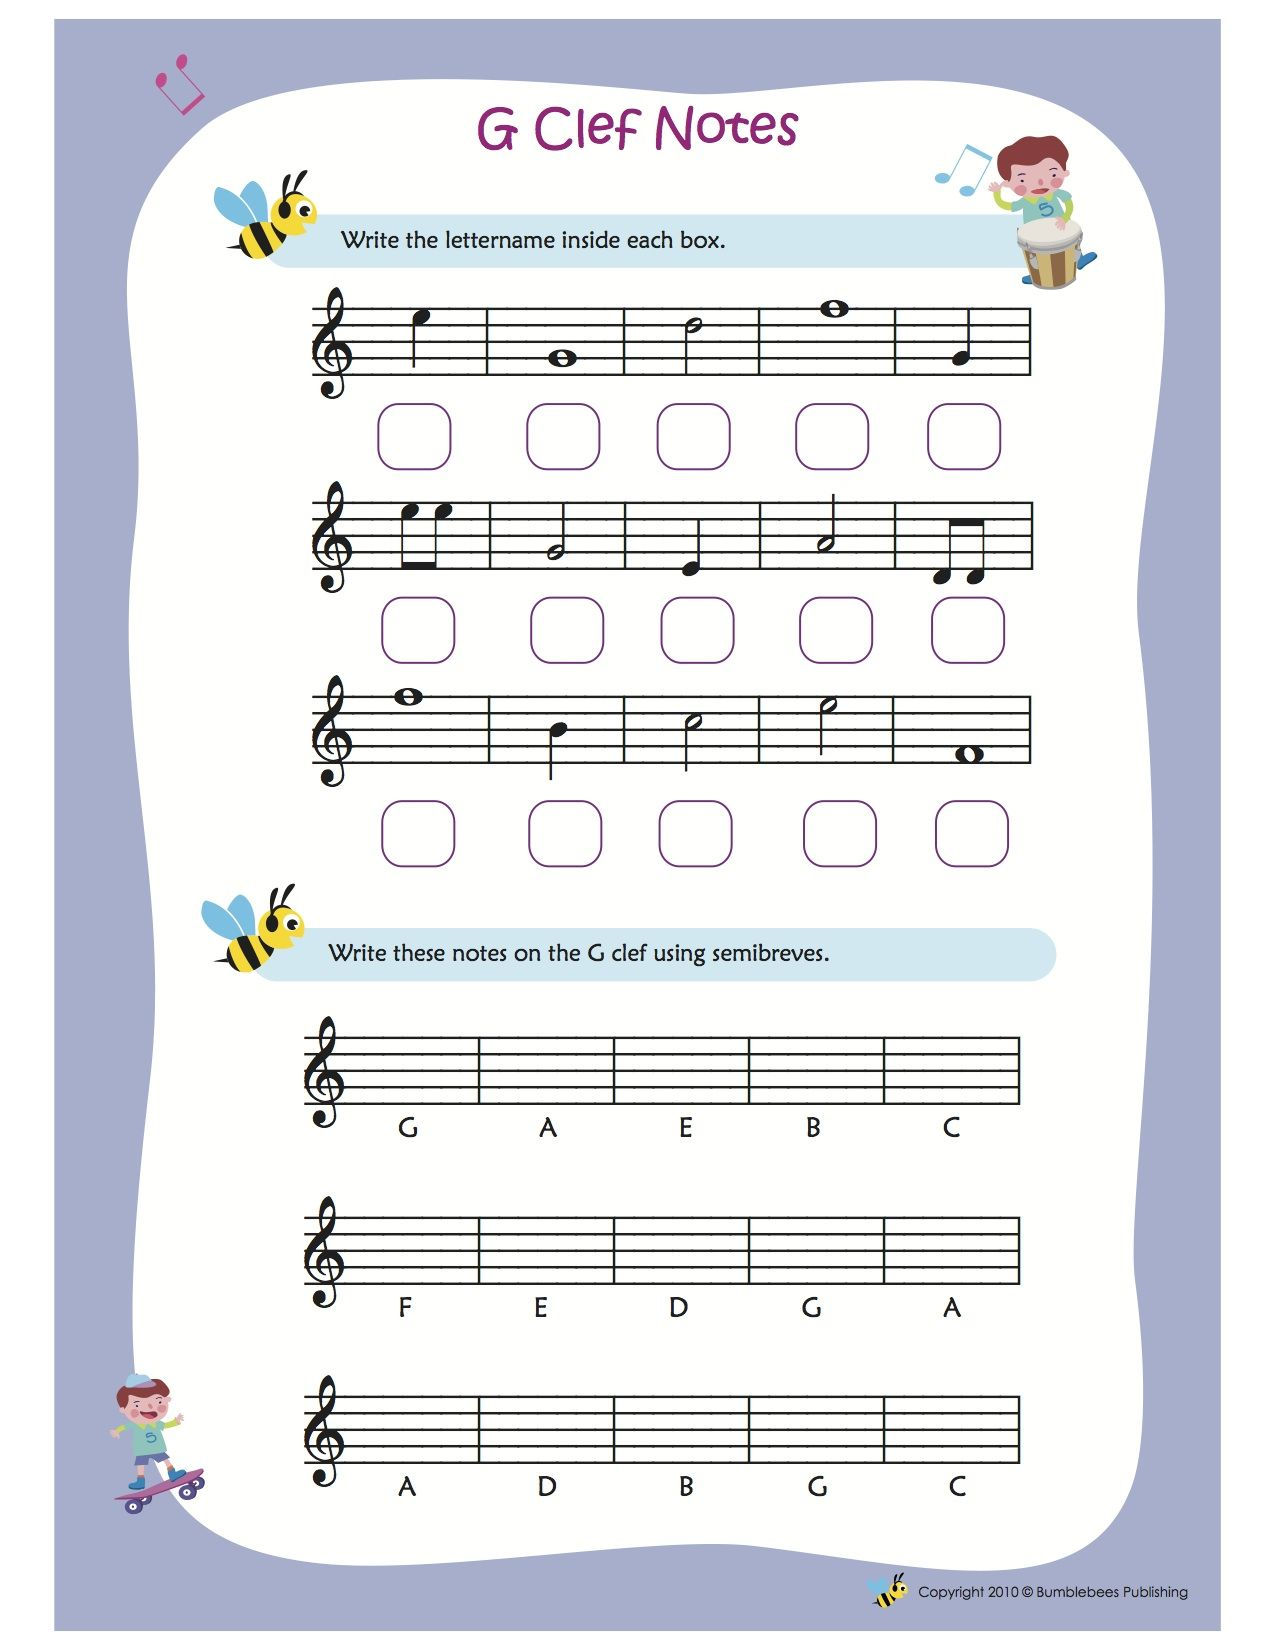 Worksheets Music Theory Worksheets For Middle School treble clef fun note reading easy music theory for middle school clefmusic theorymiddle schoolworksheetsmusic